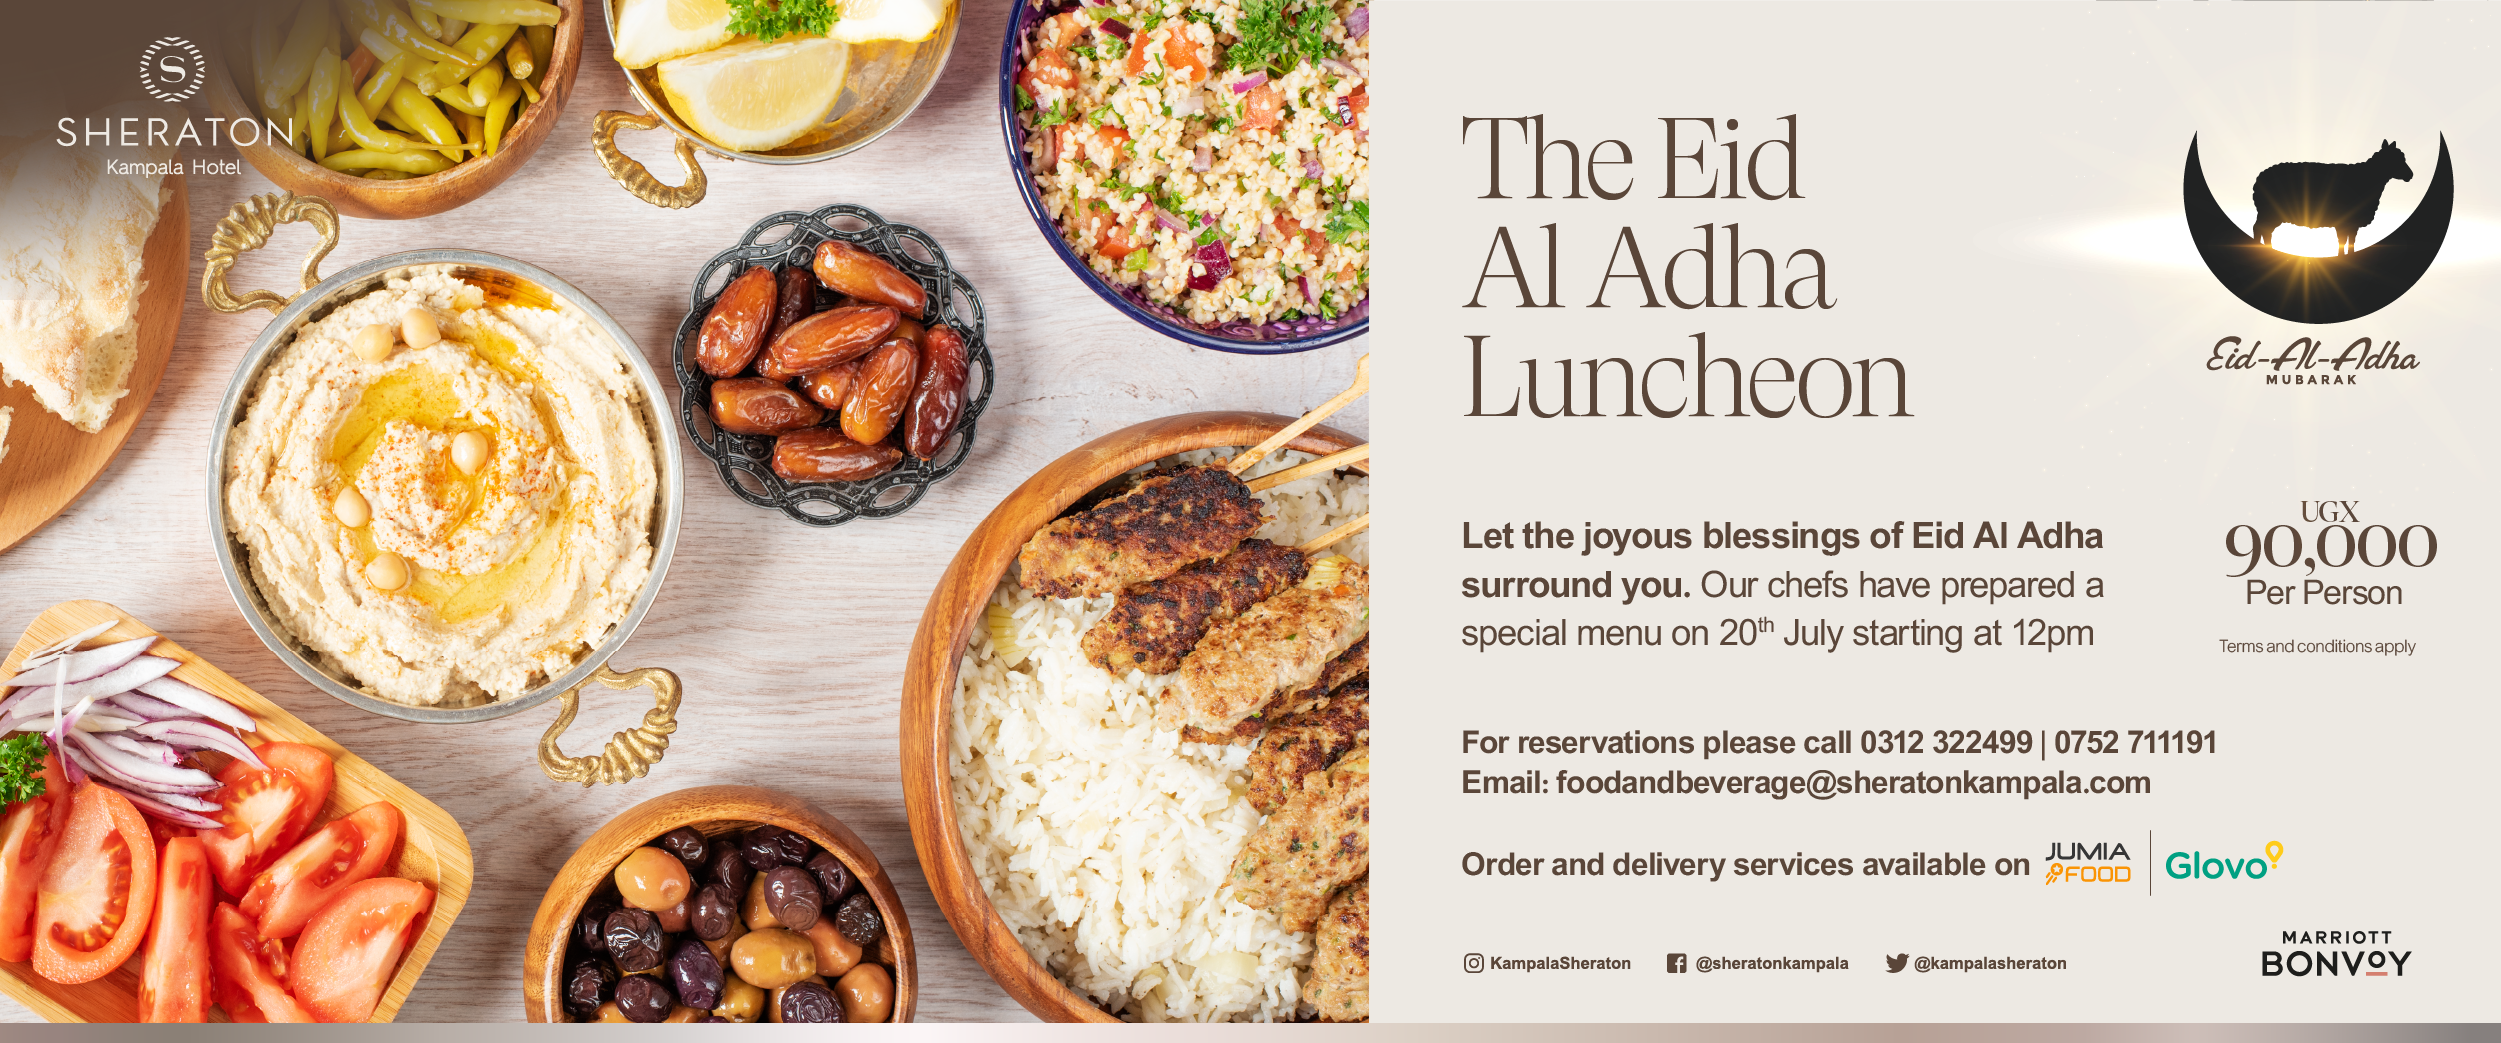 The Sheraton Kampala Hotel wishes you a Happy Eid al Adha - and provides the food to celebrate the occasion